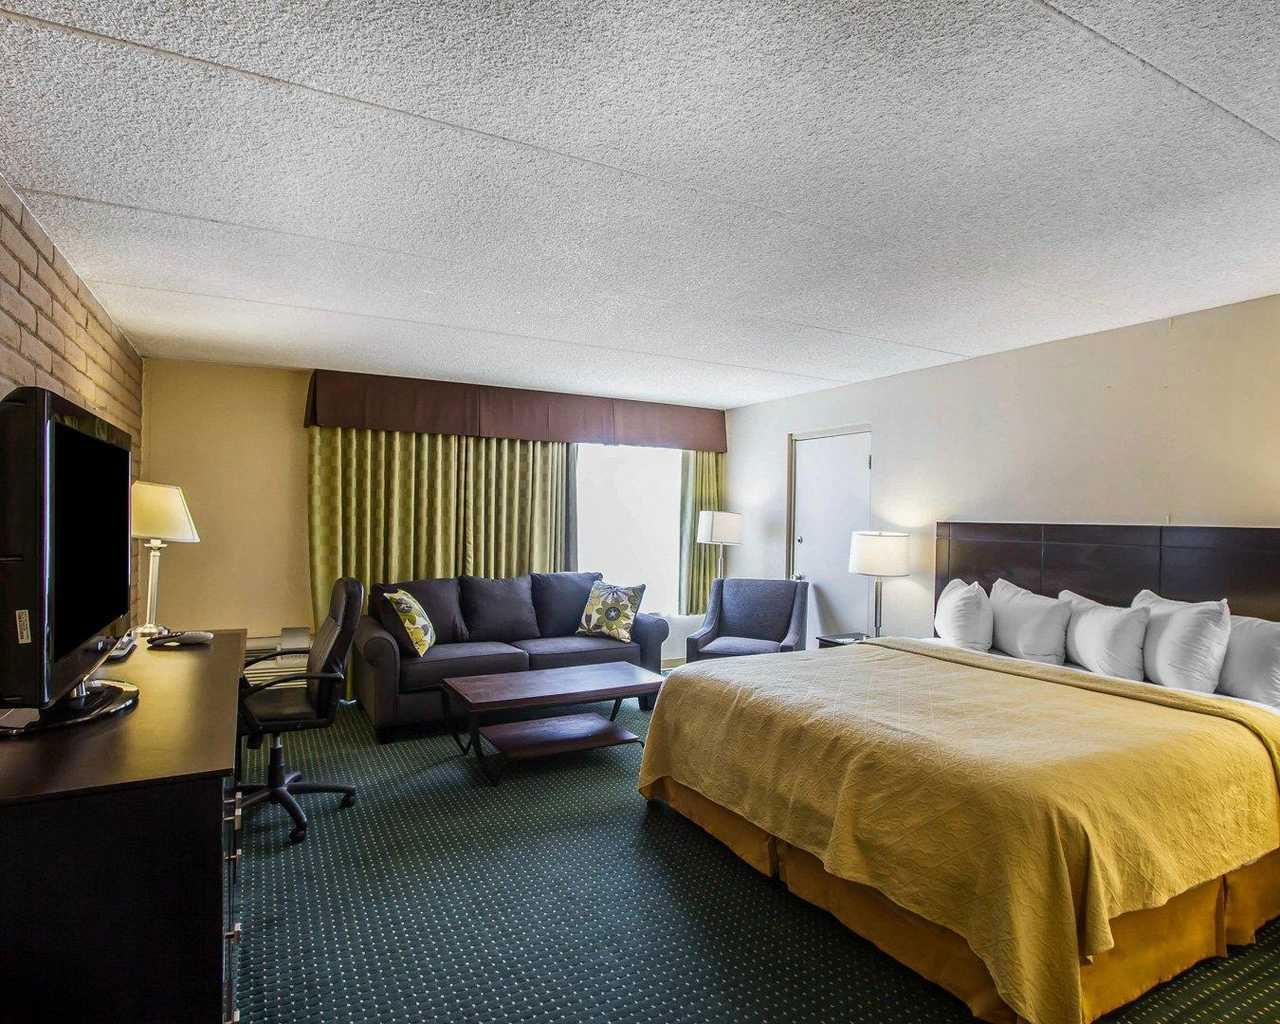 Quality Inn - Sierra Vista